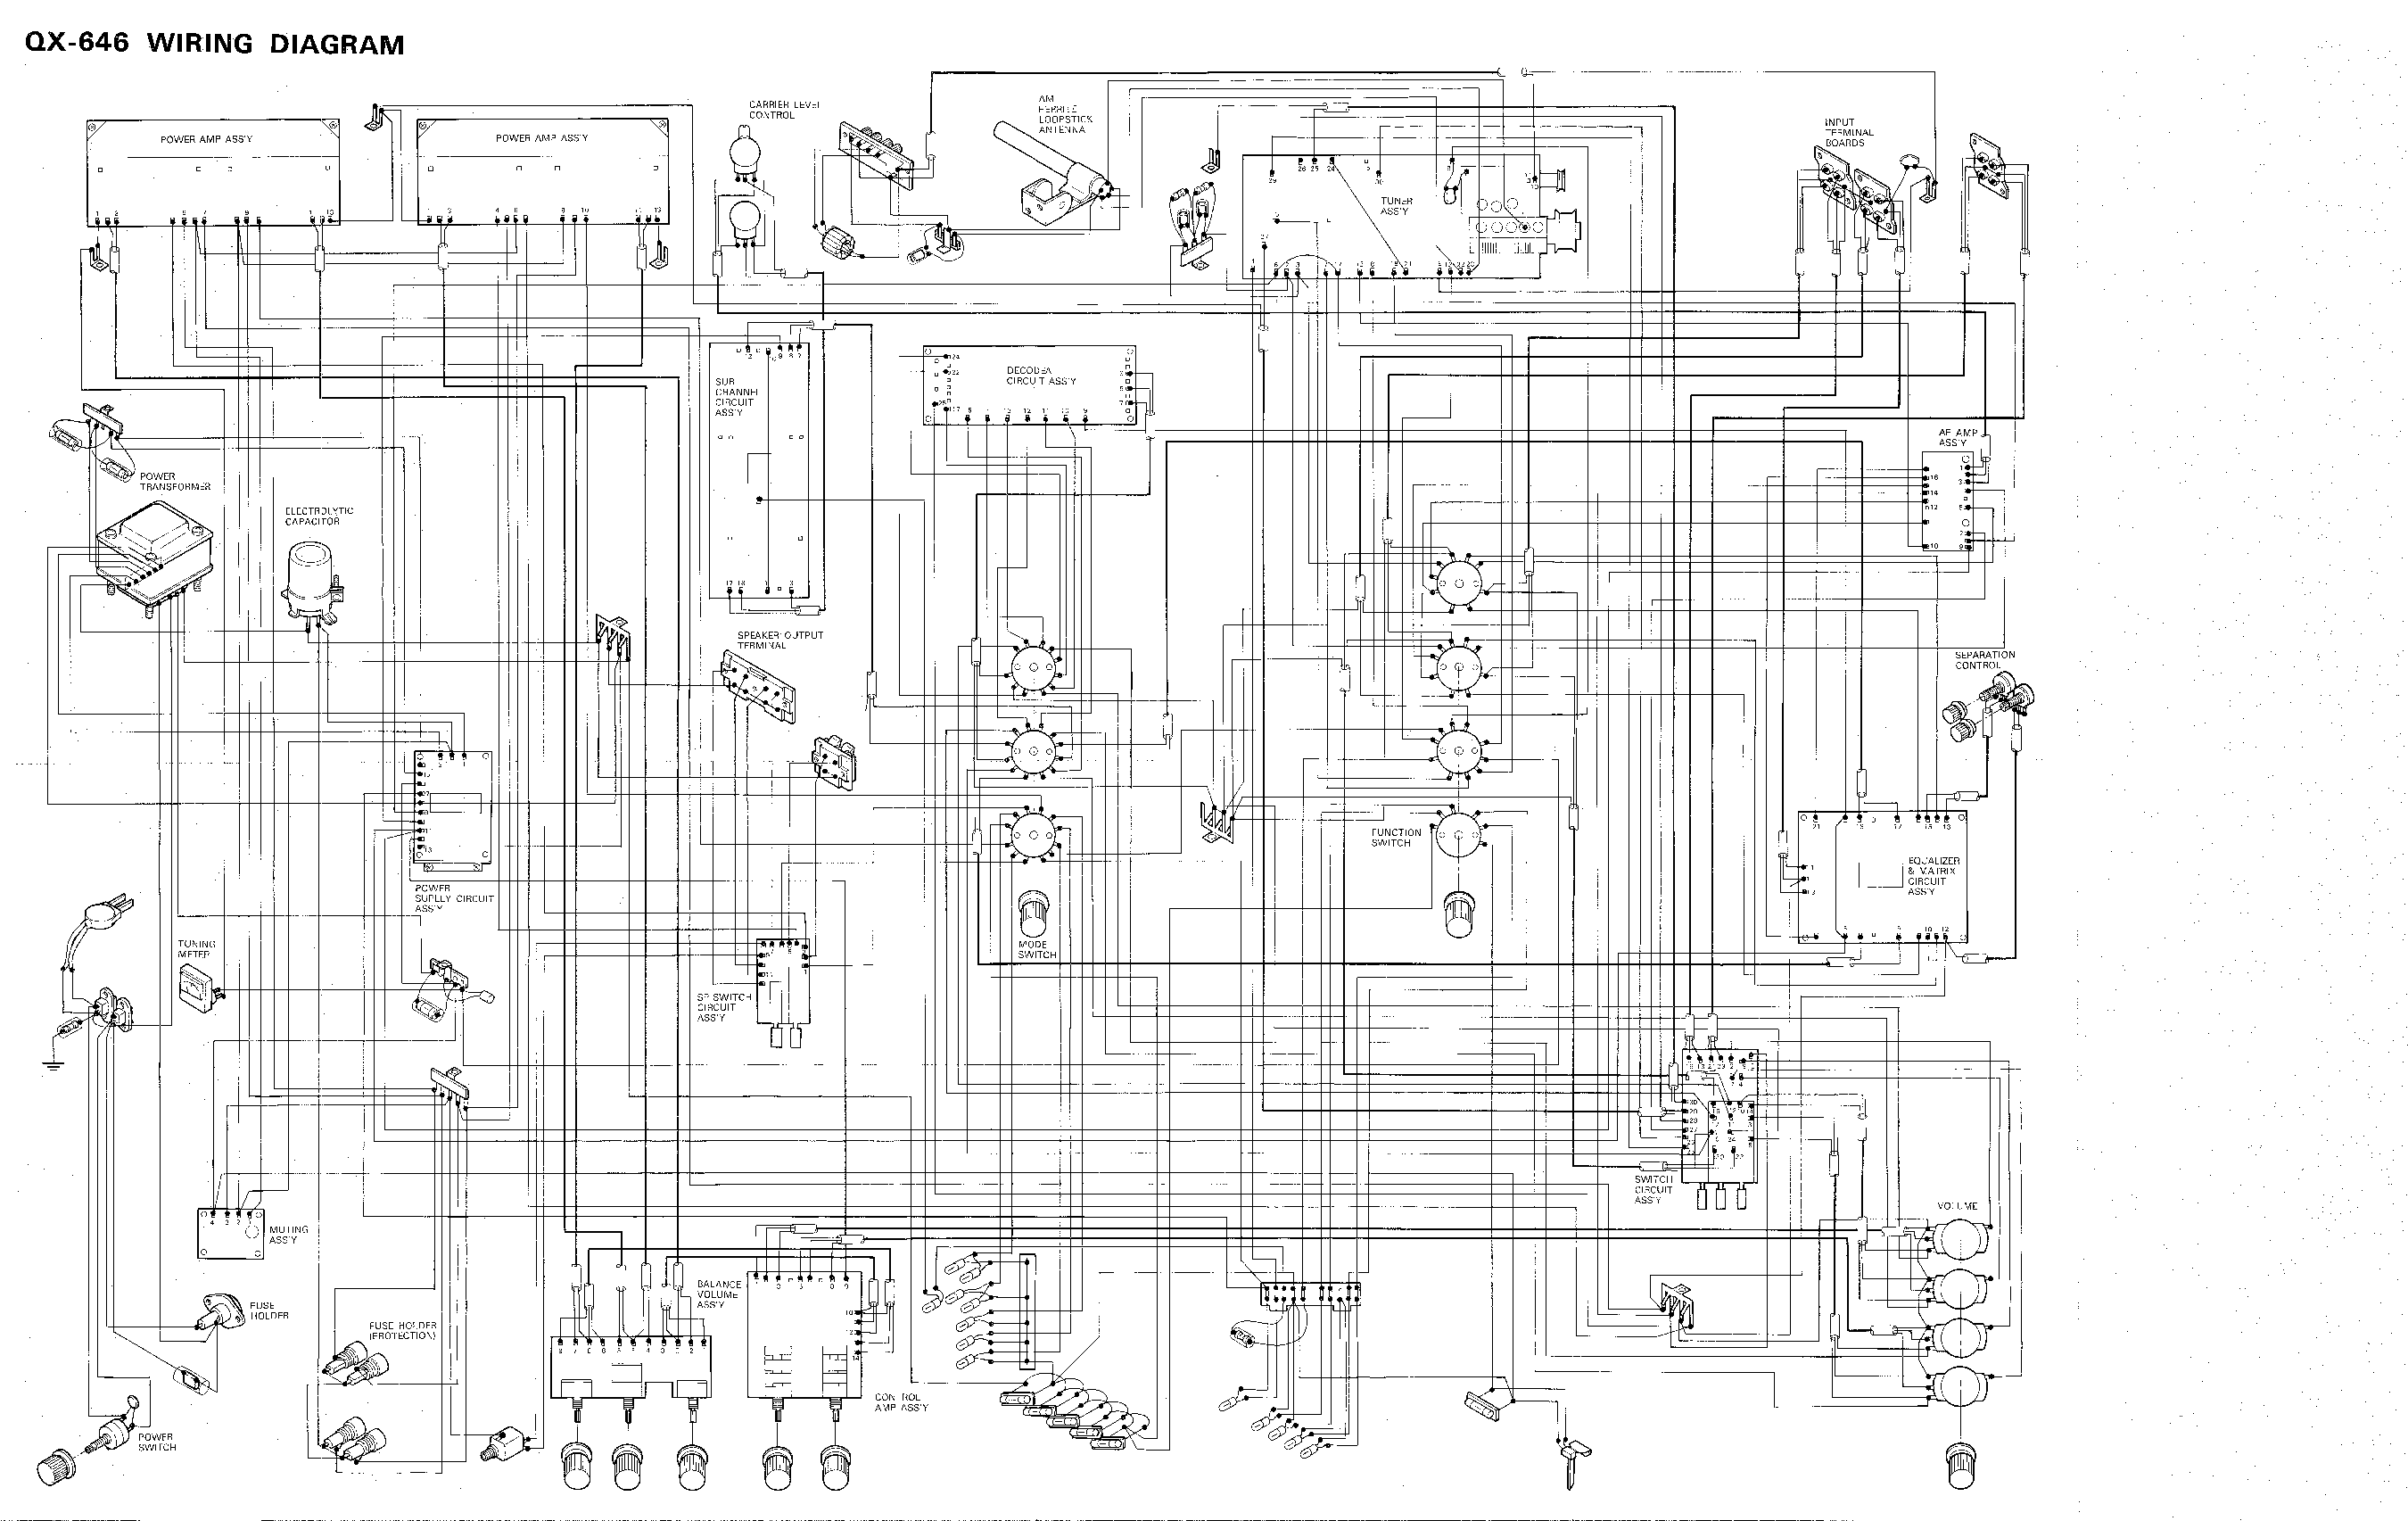 Pioneer Qx 646 Kuw Fw 4 Channel Receiver Wiring Sm Service Manual Download Schematics